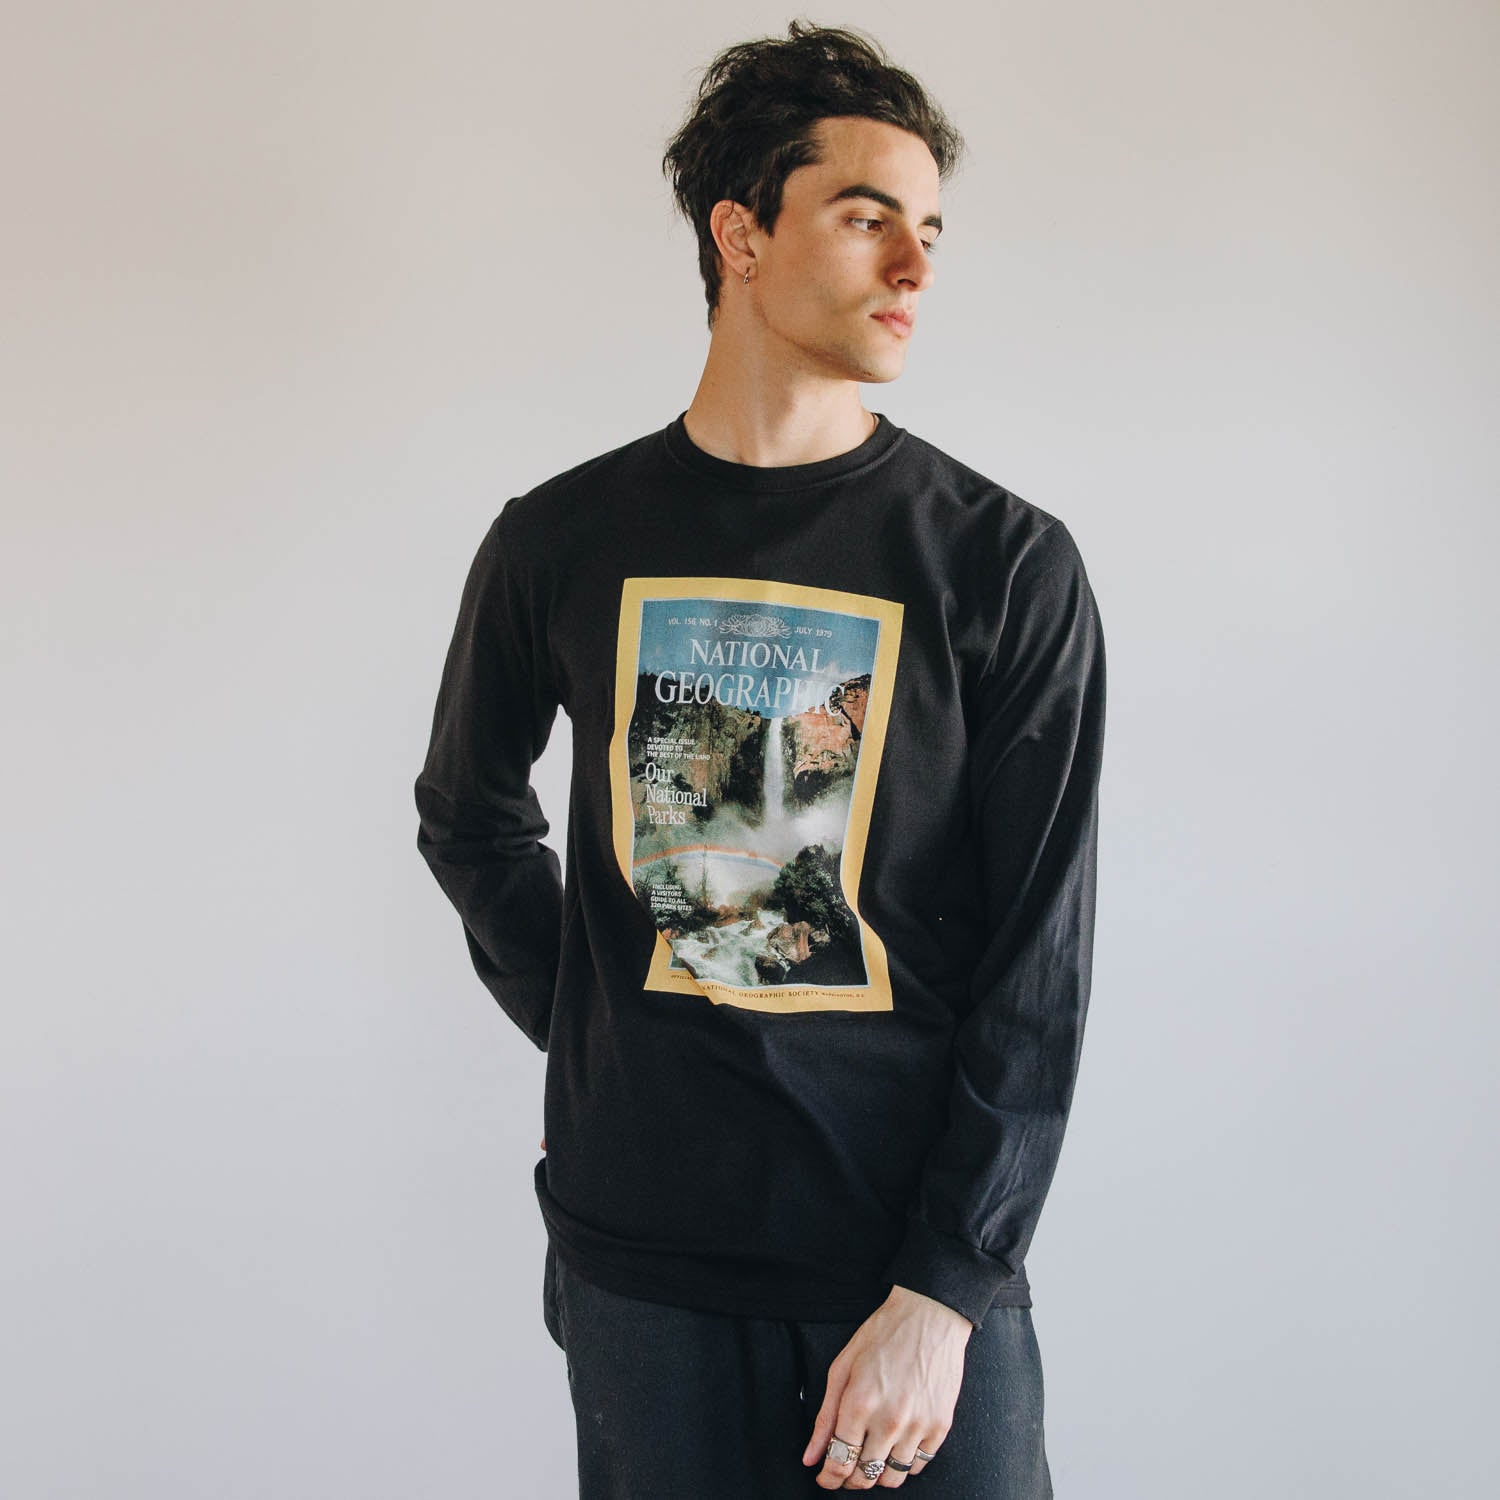 National Geographic x Parks Project Vintage Magazine Cover Long Sleeve Tee | Parks Project | National Parks Shirts